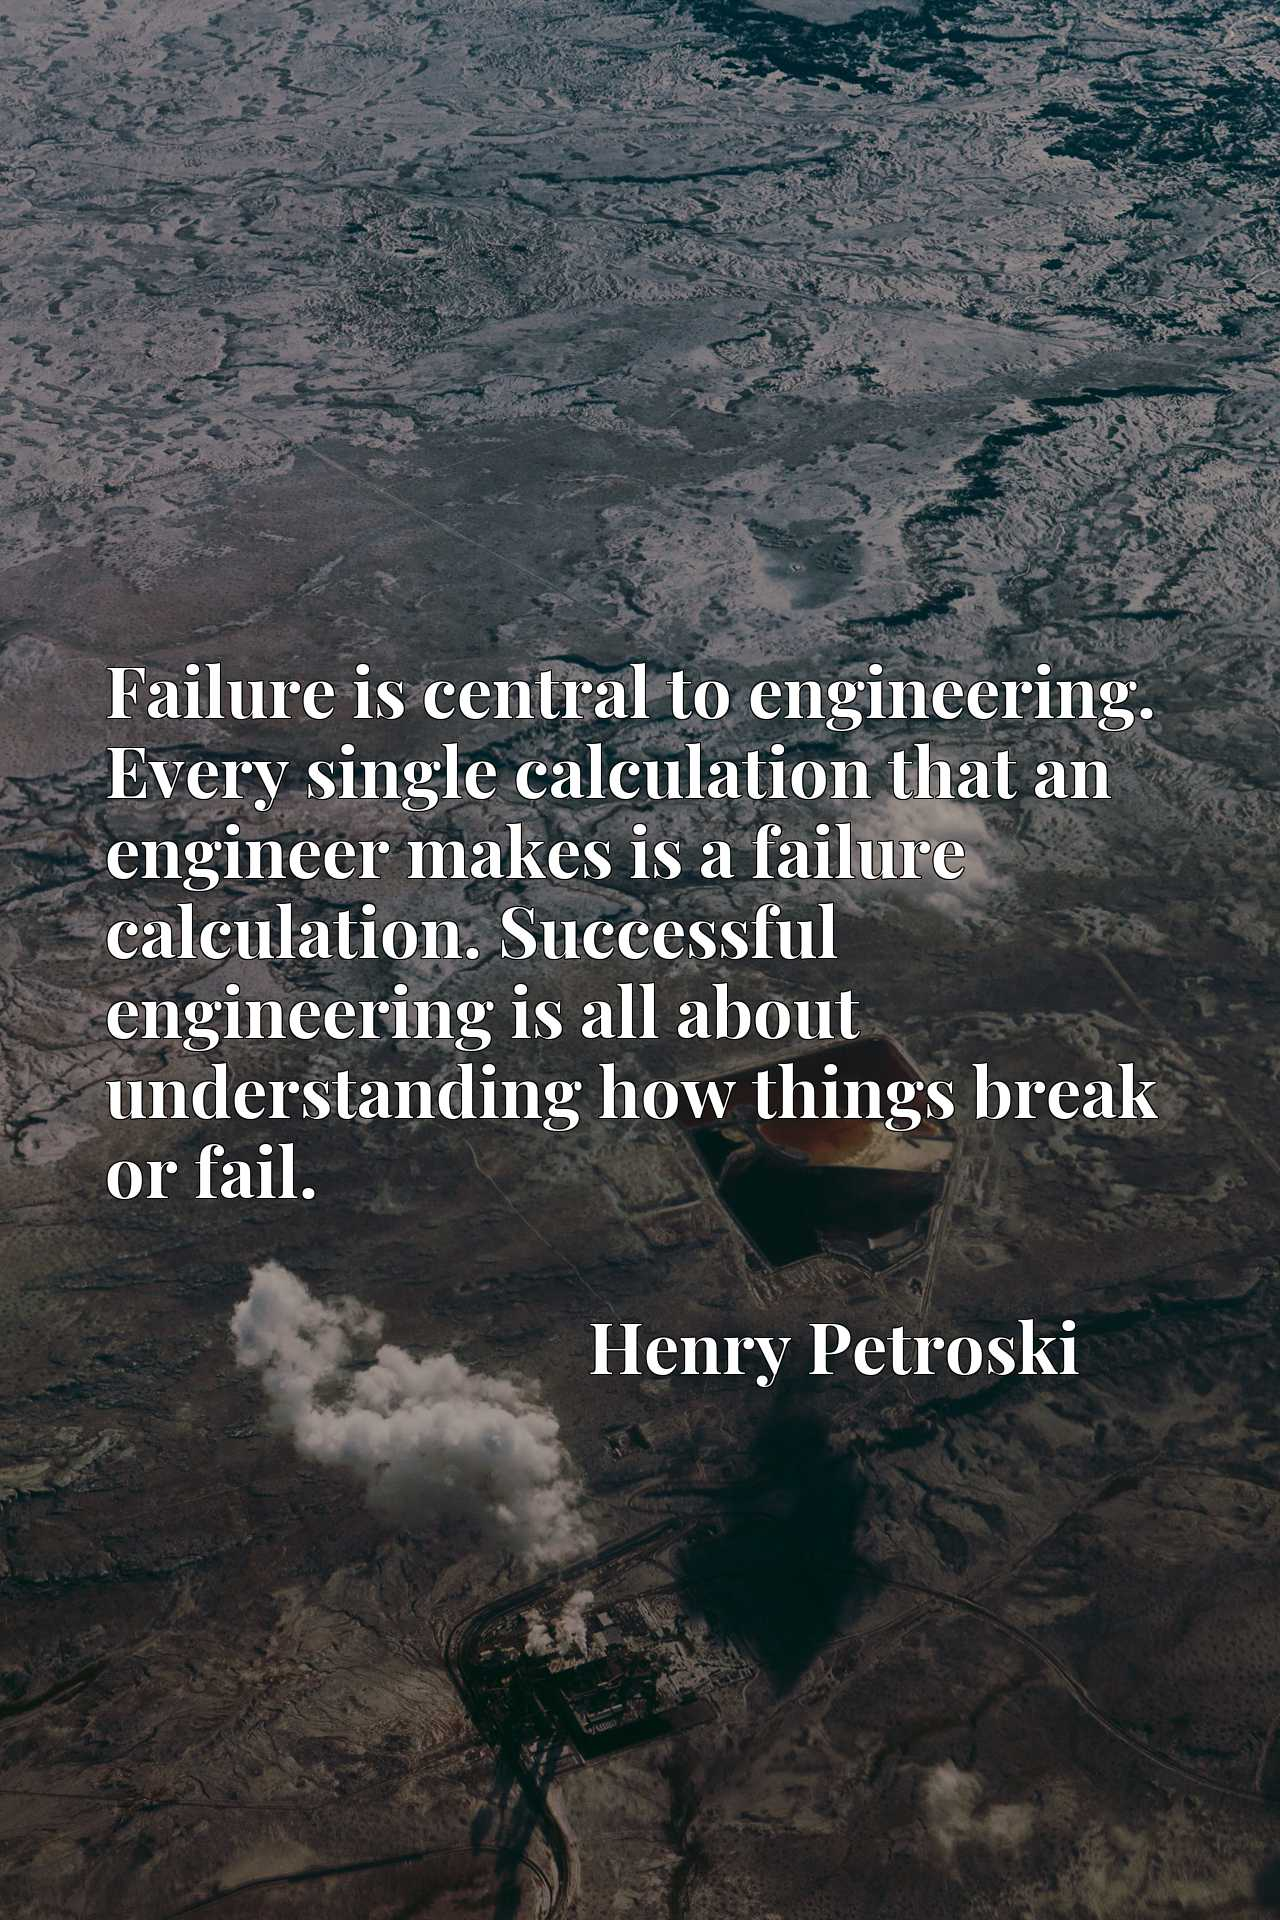 Failure is central to engineering. Every single calculation that an engineer makes is a failure calculation. Successful engineering is all about understanding how things break or fail.